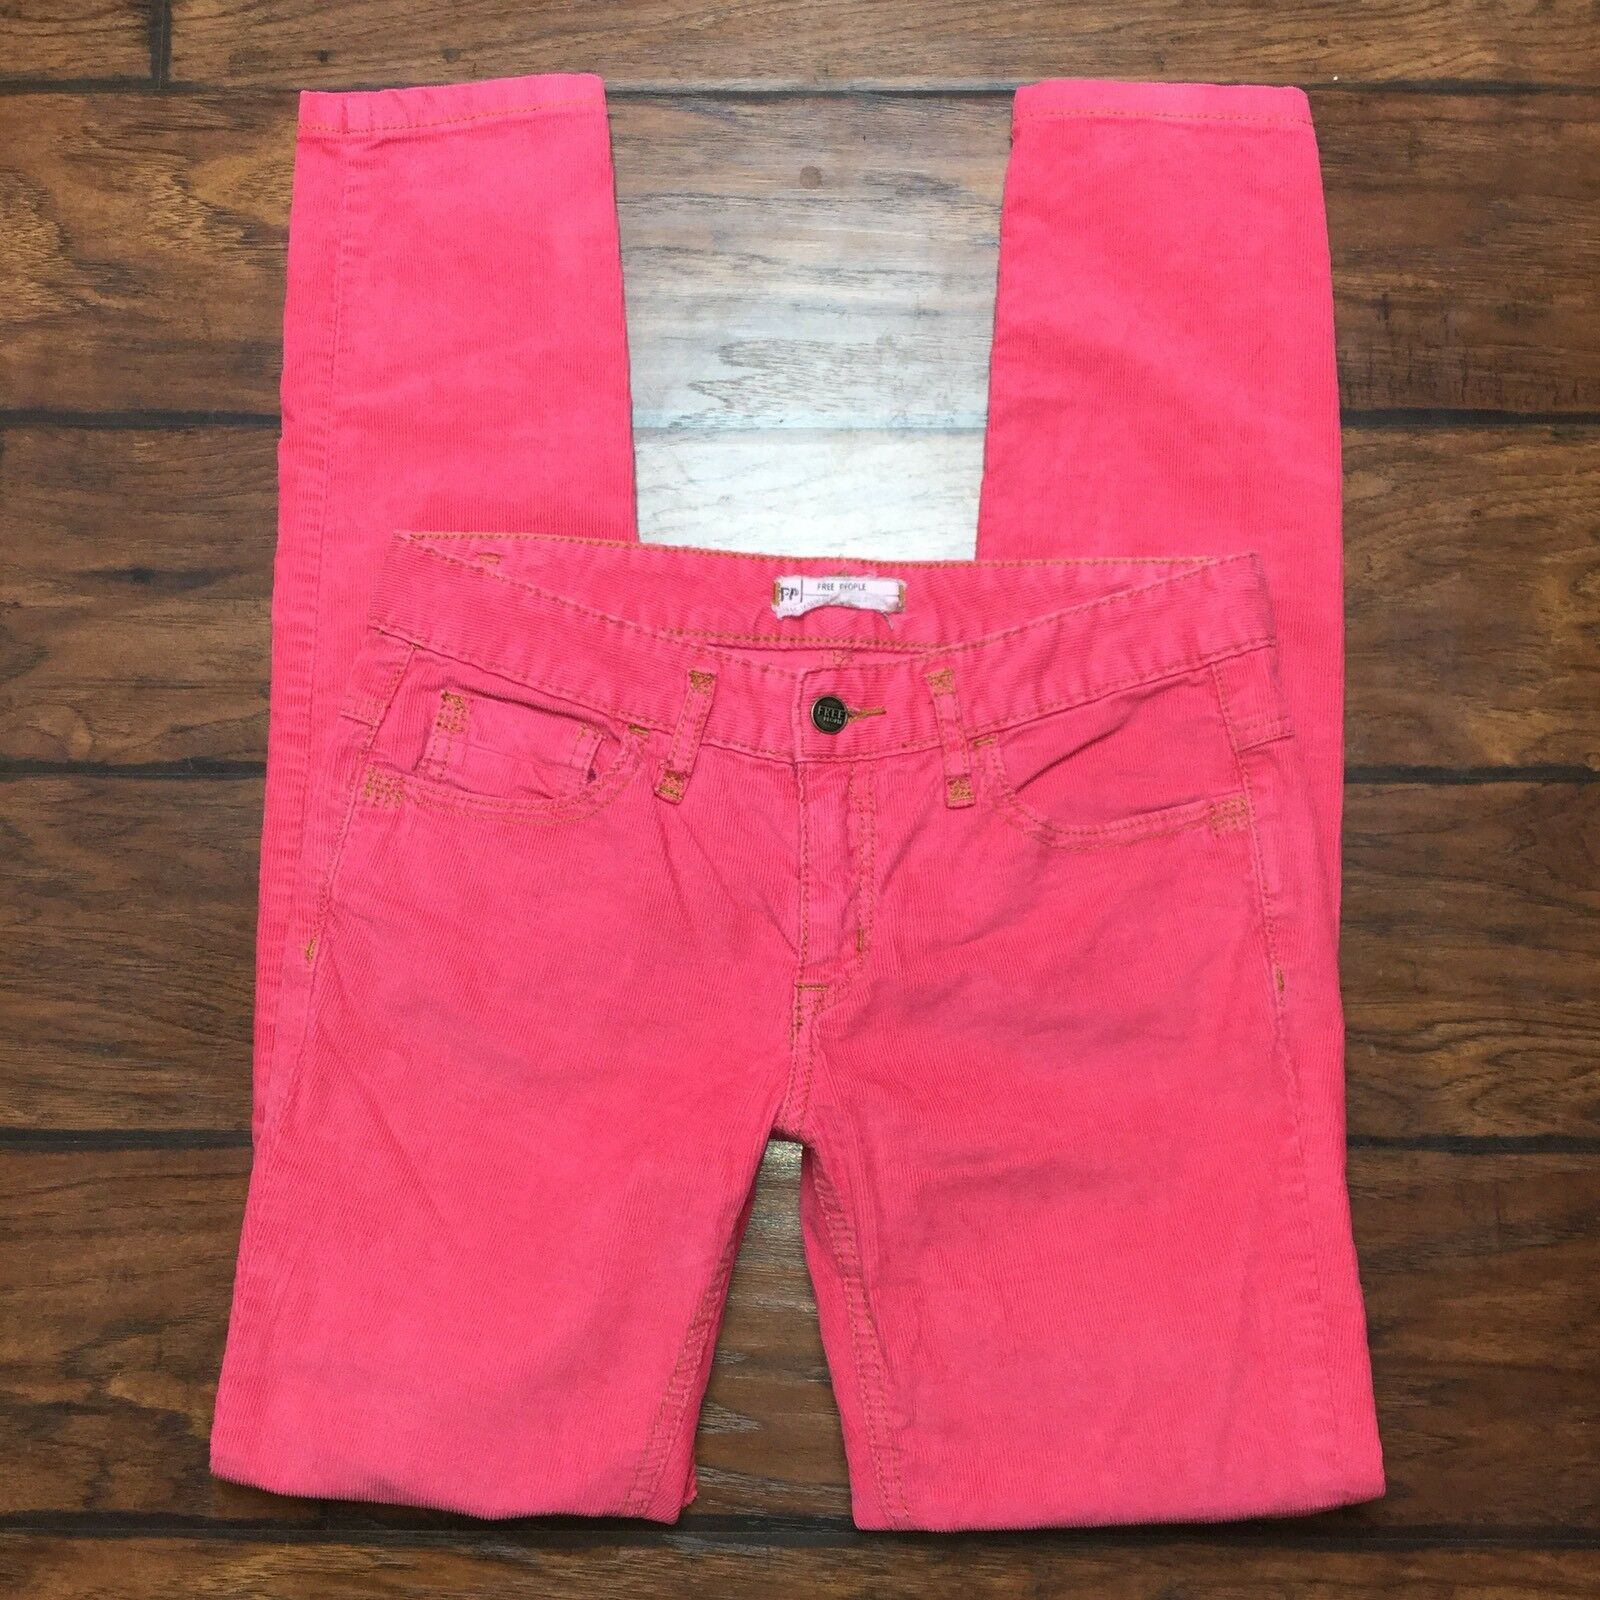 Free People Corduroy Skinny Jeans Size 27 Womens Pink Slim Stretch